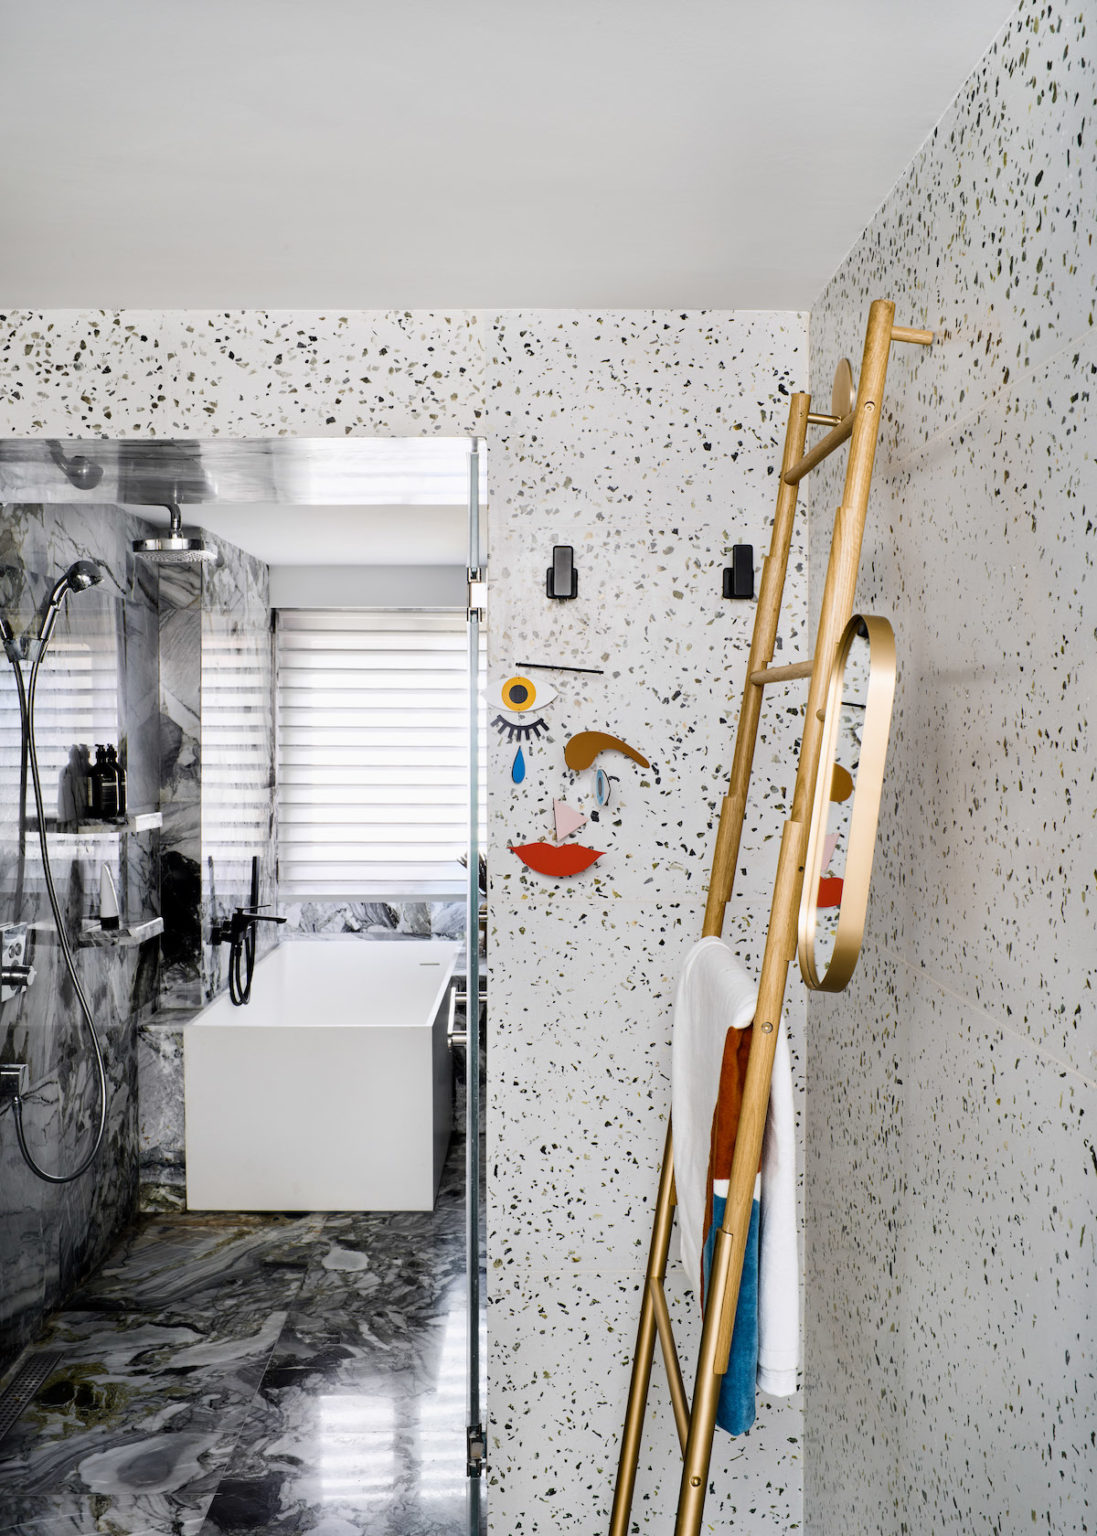 The master bathroom is done with terrazzo and grey marble tiles, with modern fixtures and touches of gold